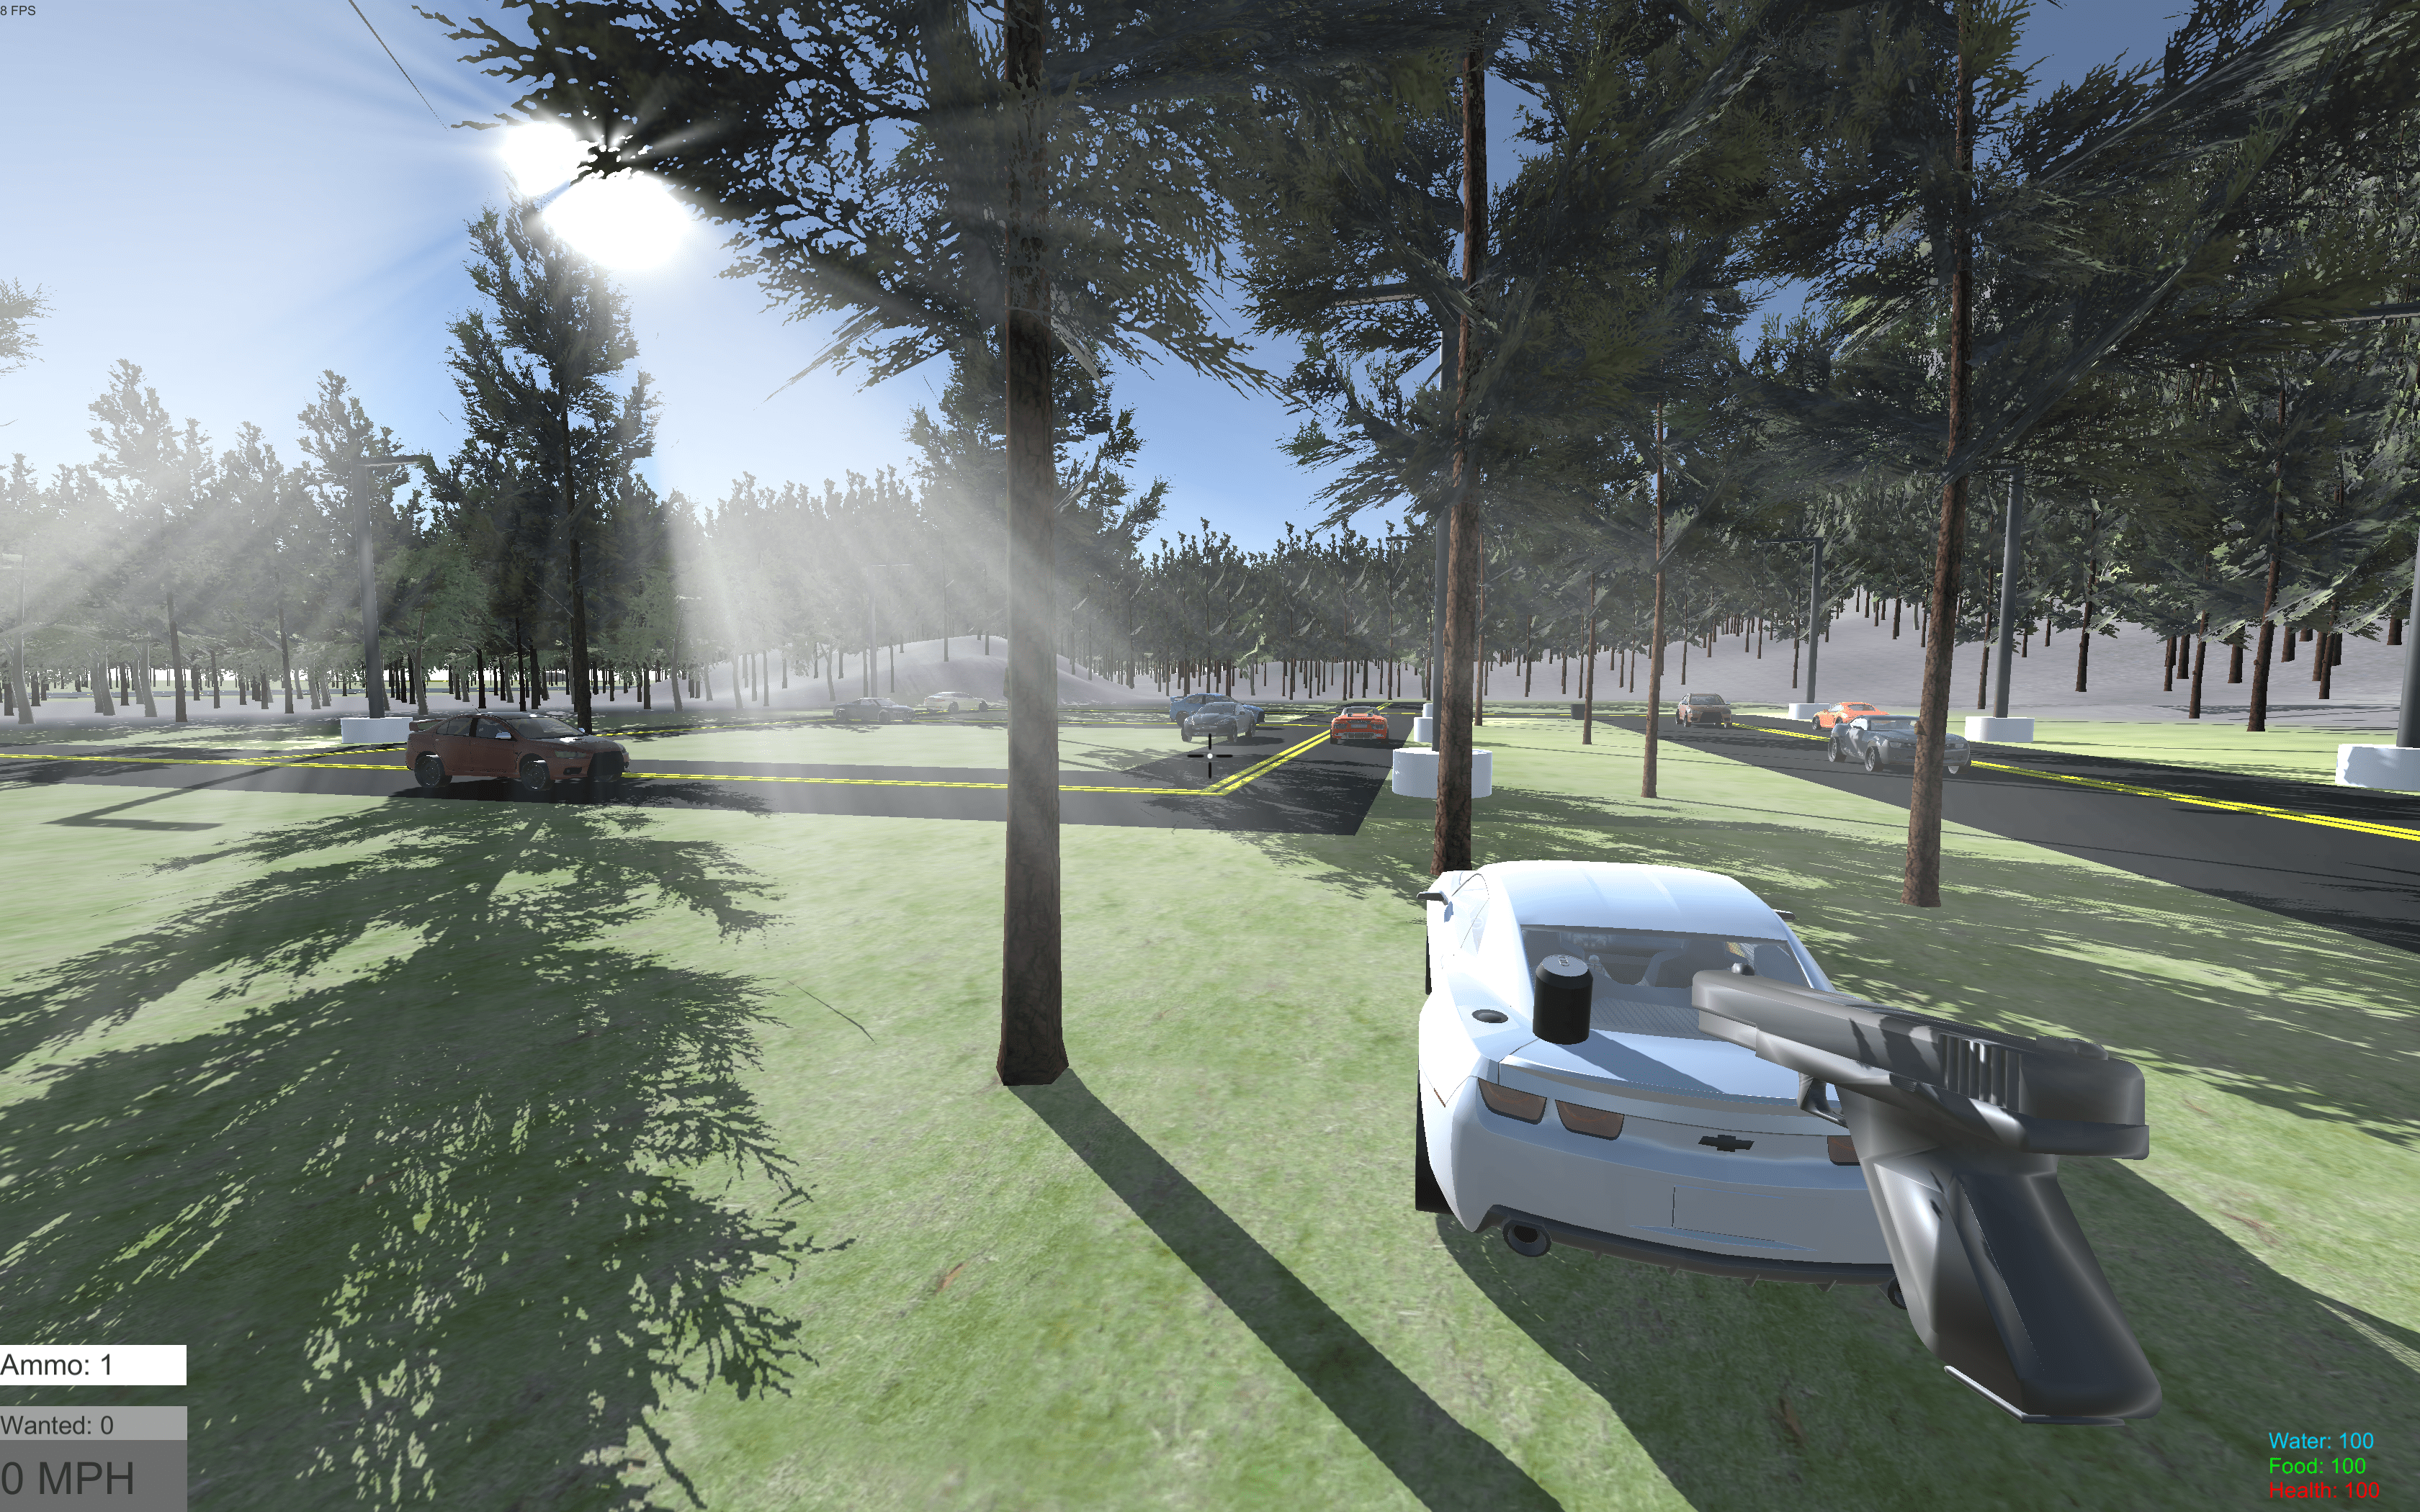 Virtual town environment with vehicles driving on roads shown from the ground through trees